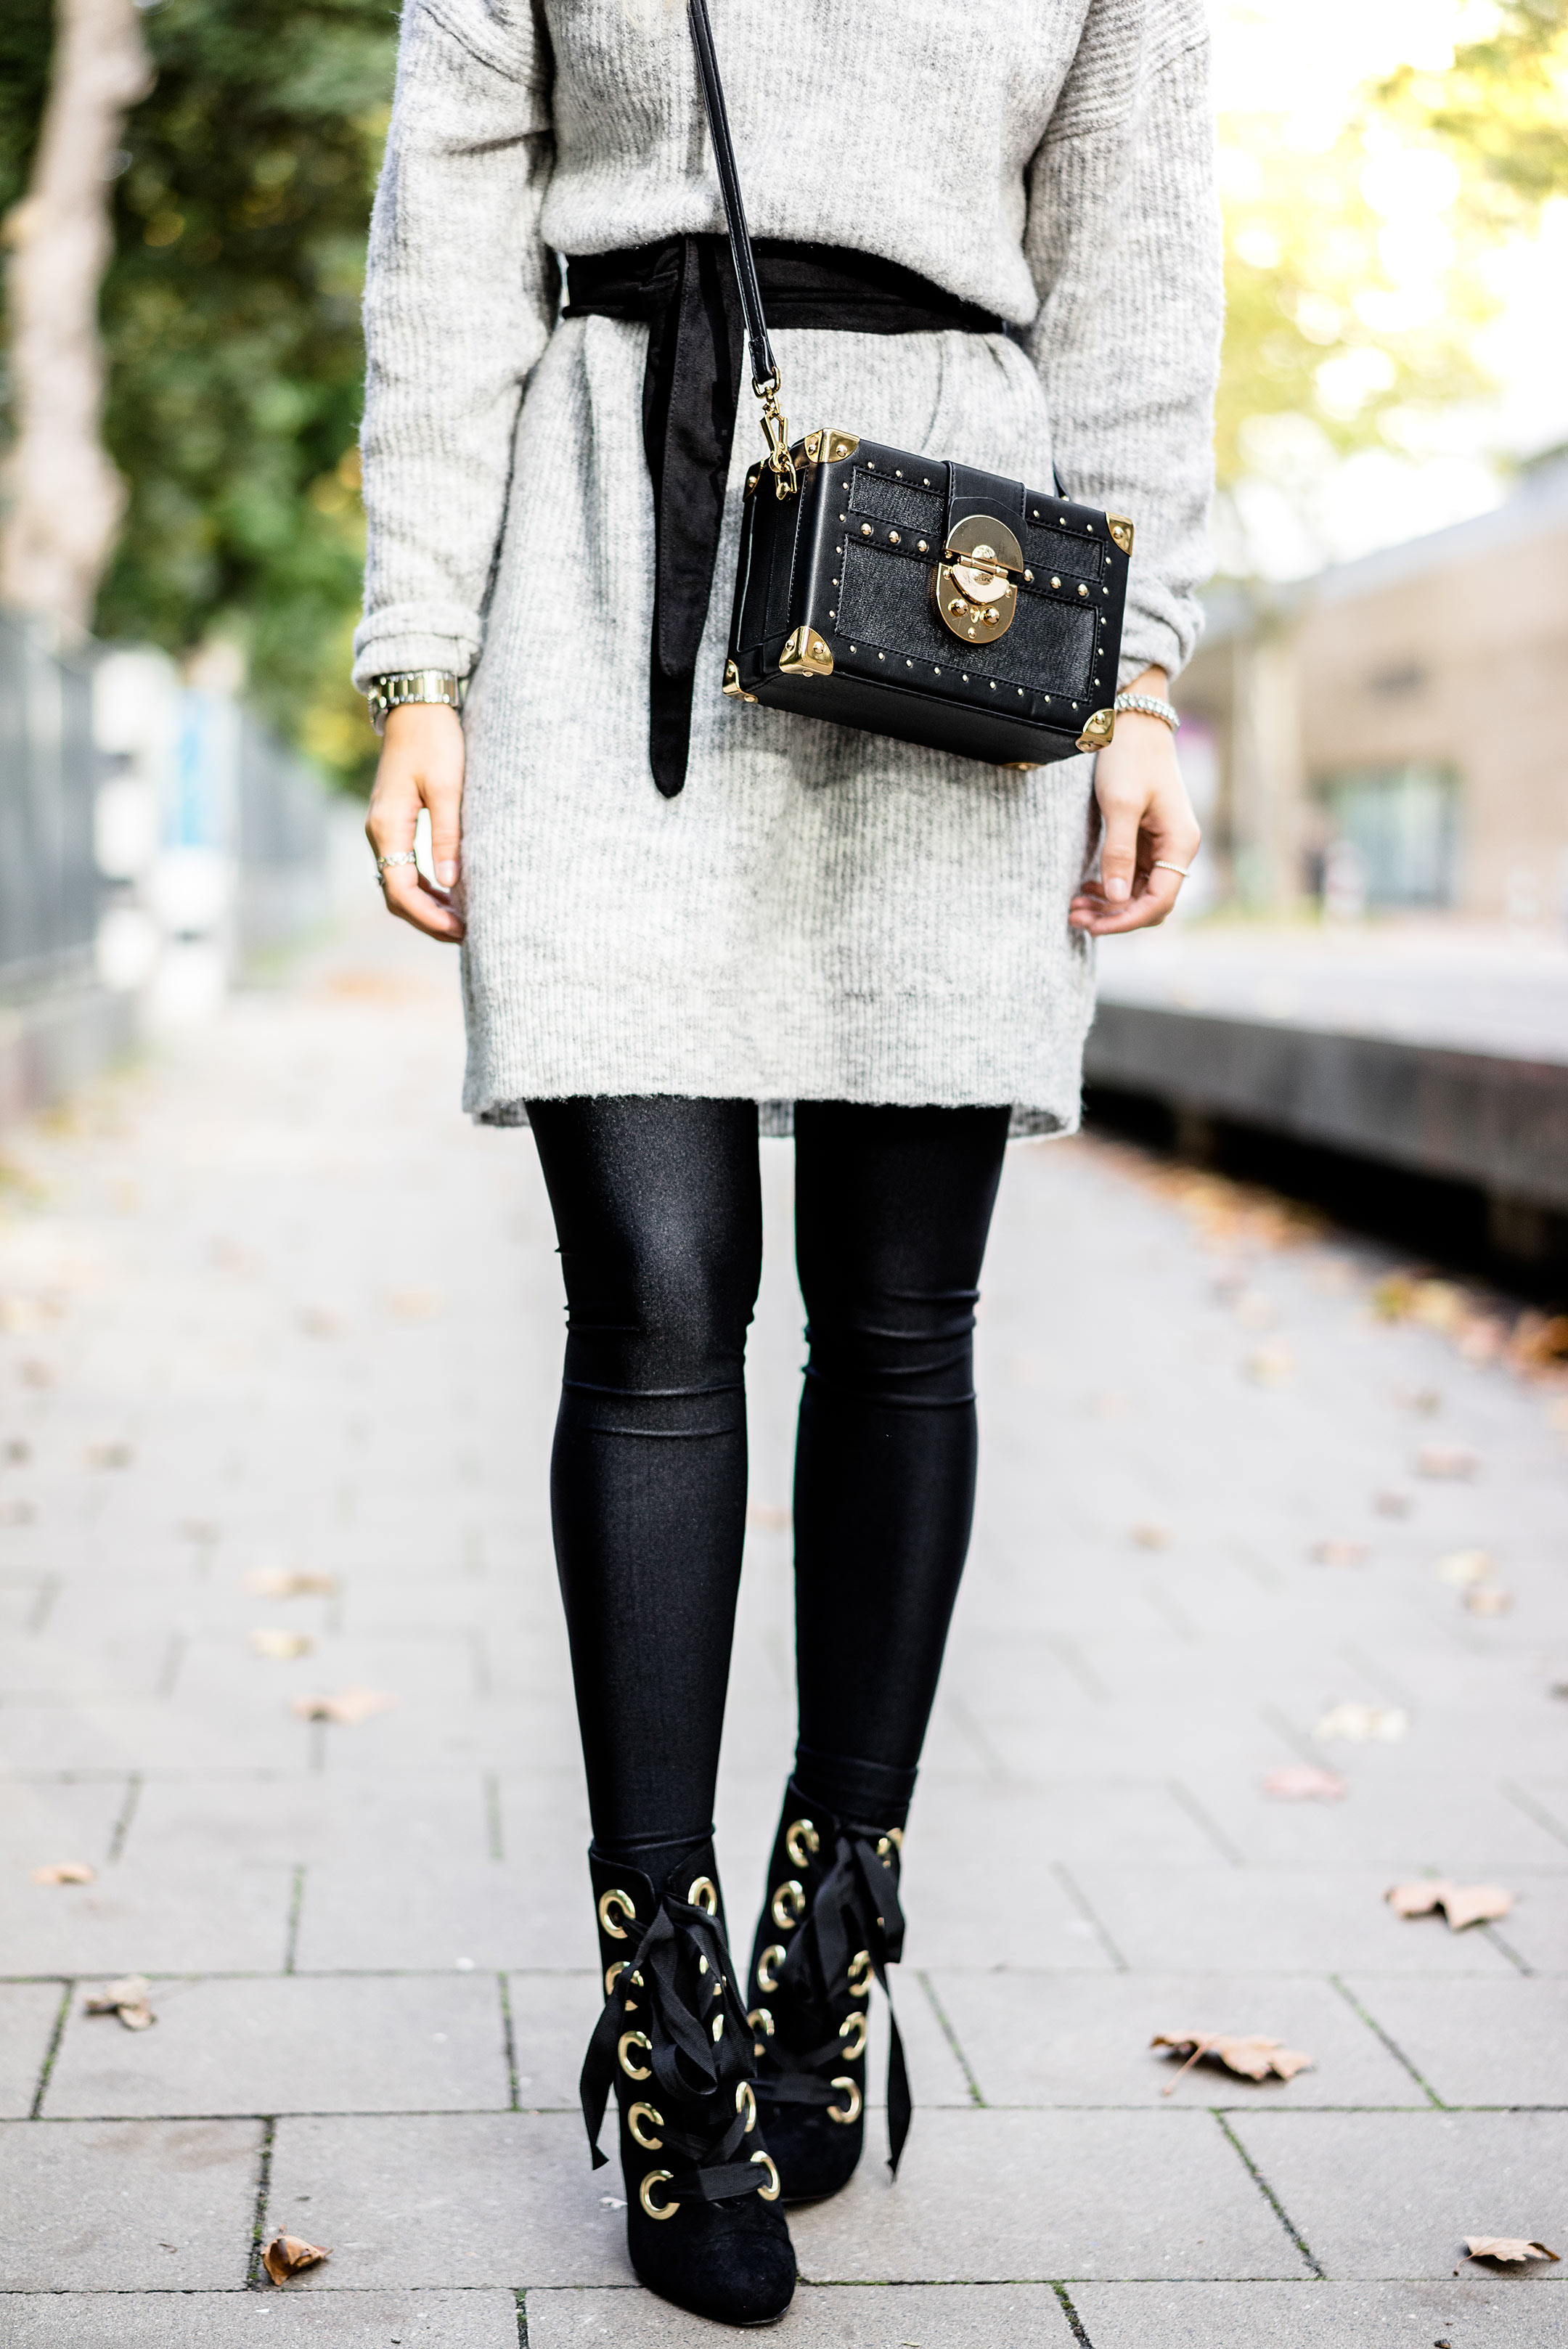 Schnürboots Strumpfhose Kleid Outfit Herbst Fashion Blog Sunnyinga